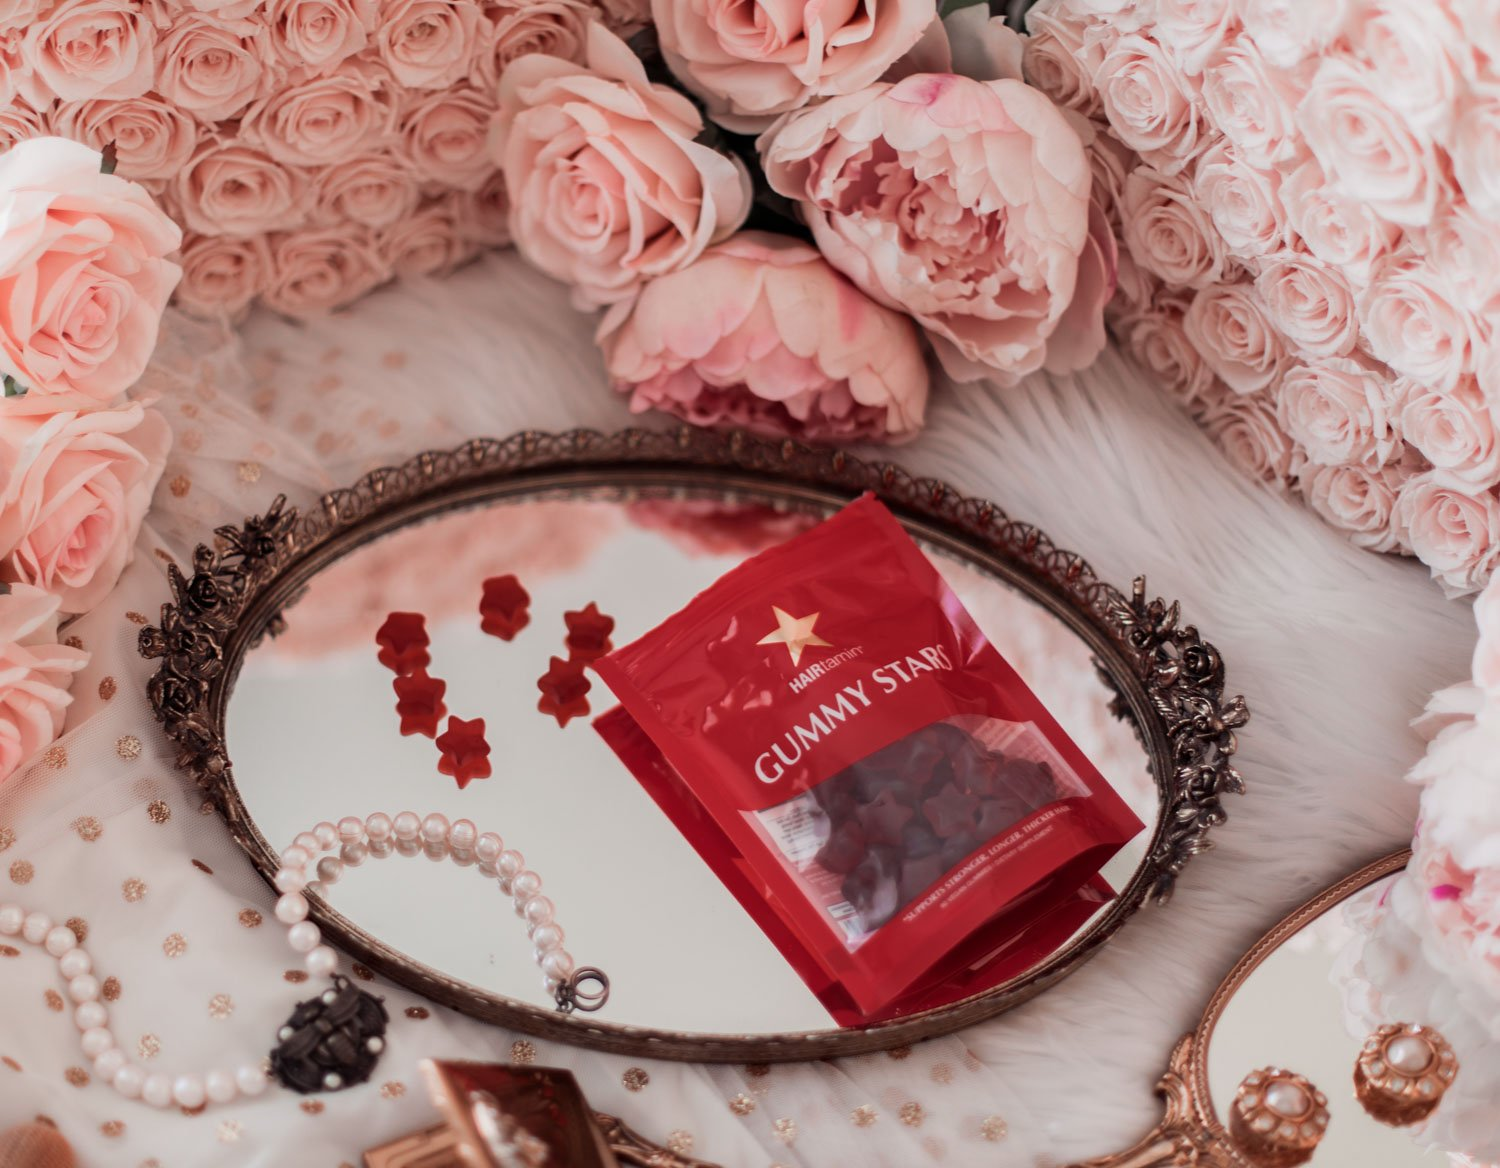 Elizabeth Hugen of Lizzie in Lace shares her Hairtamin gummy stars review